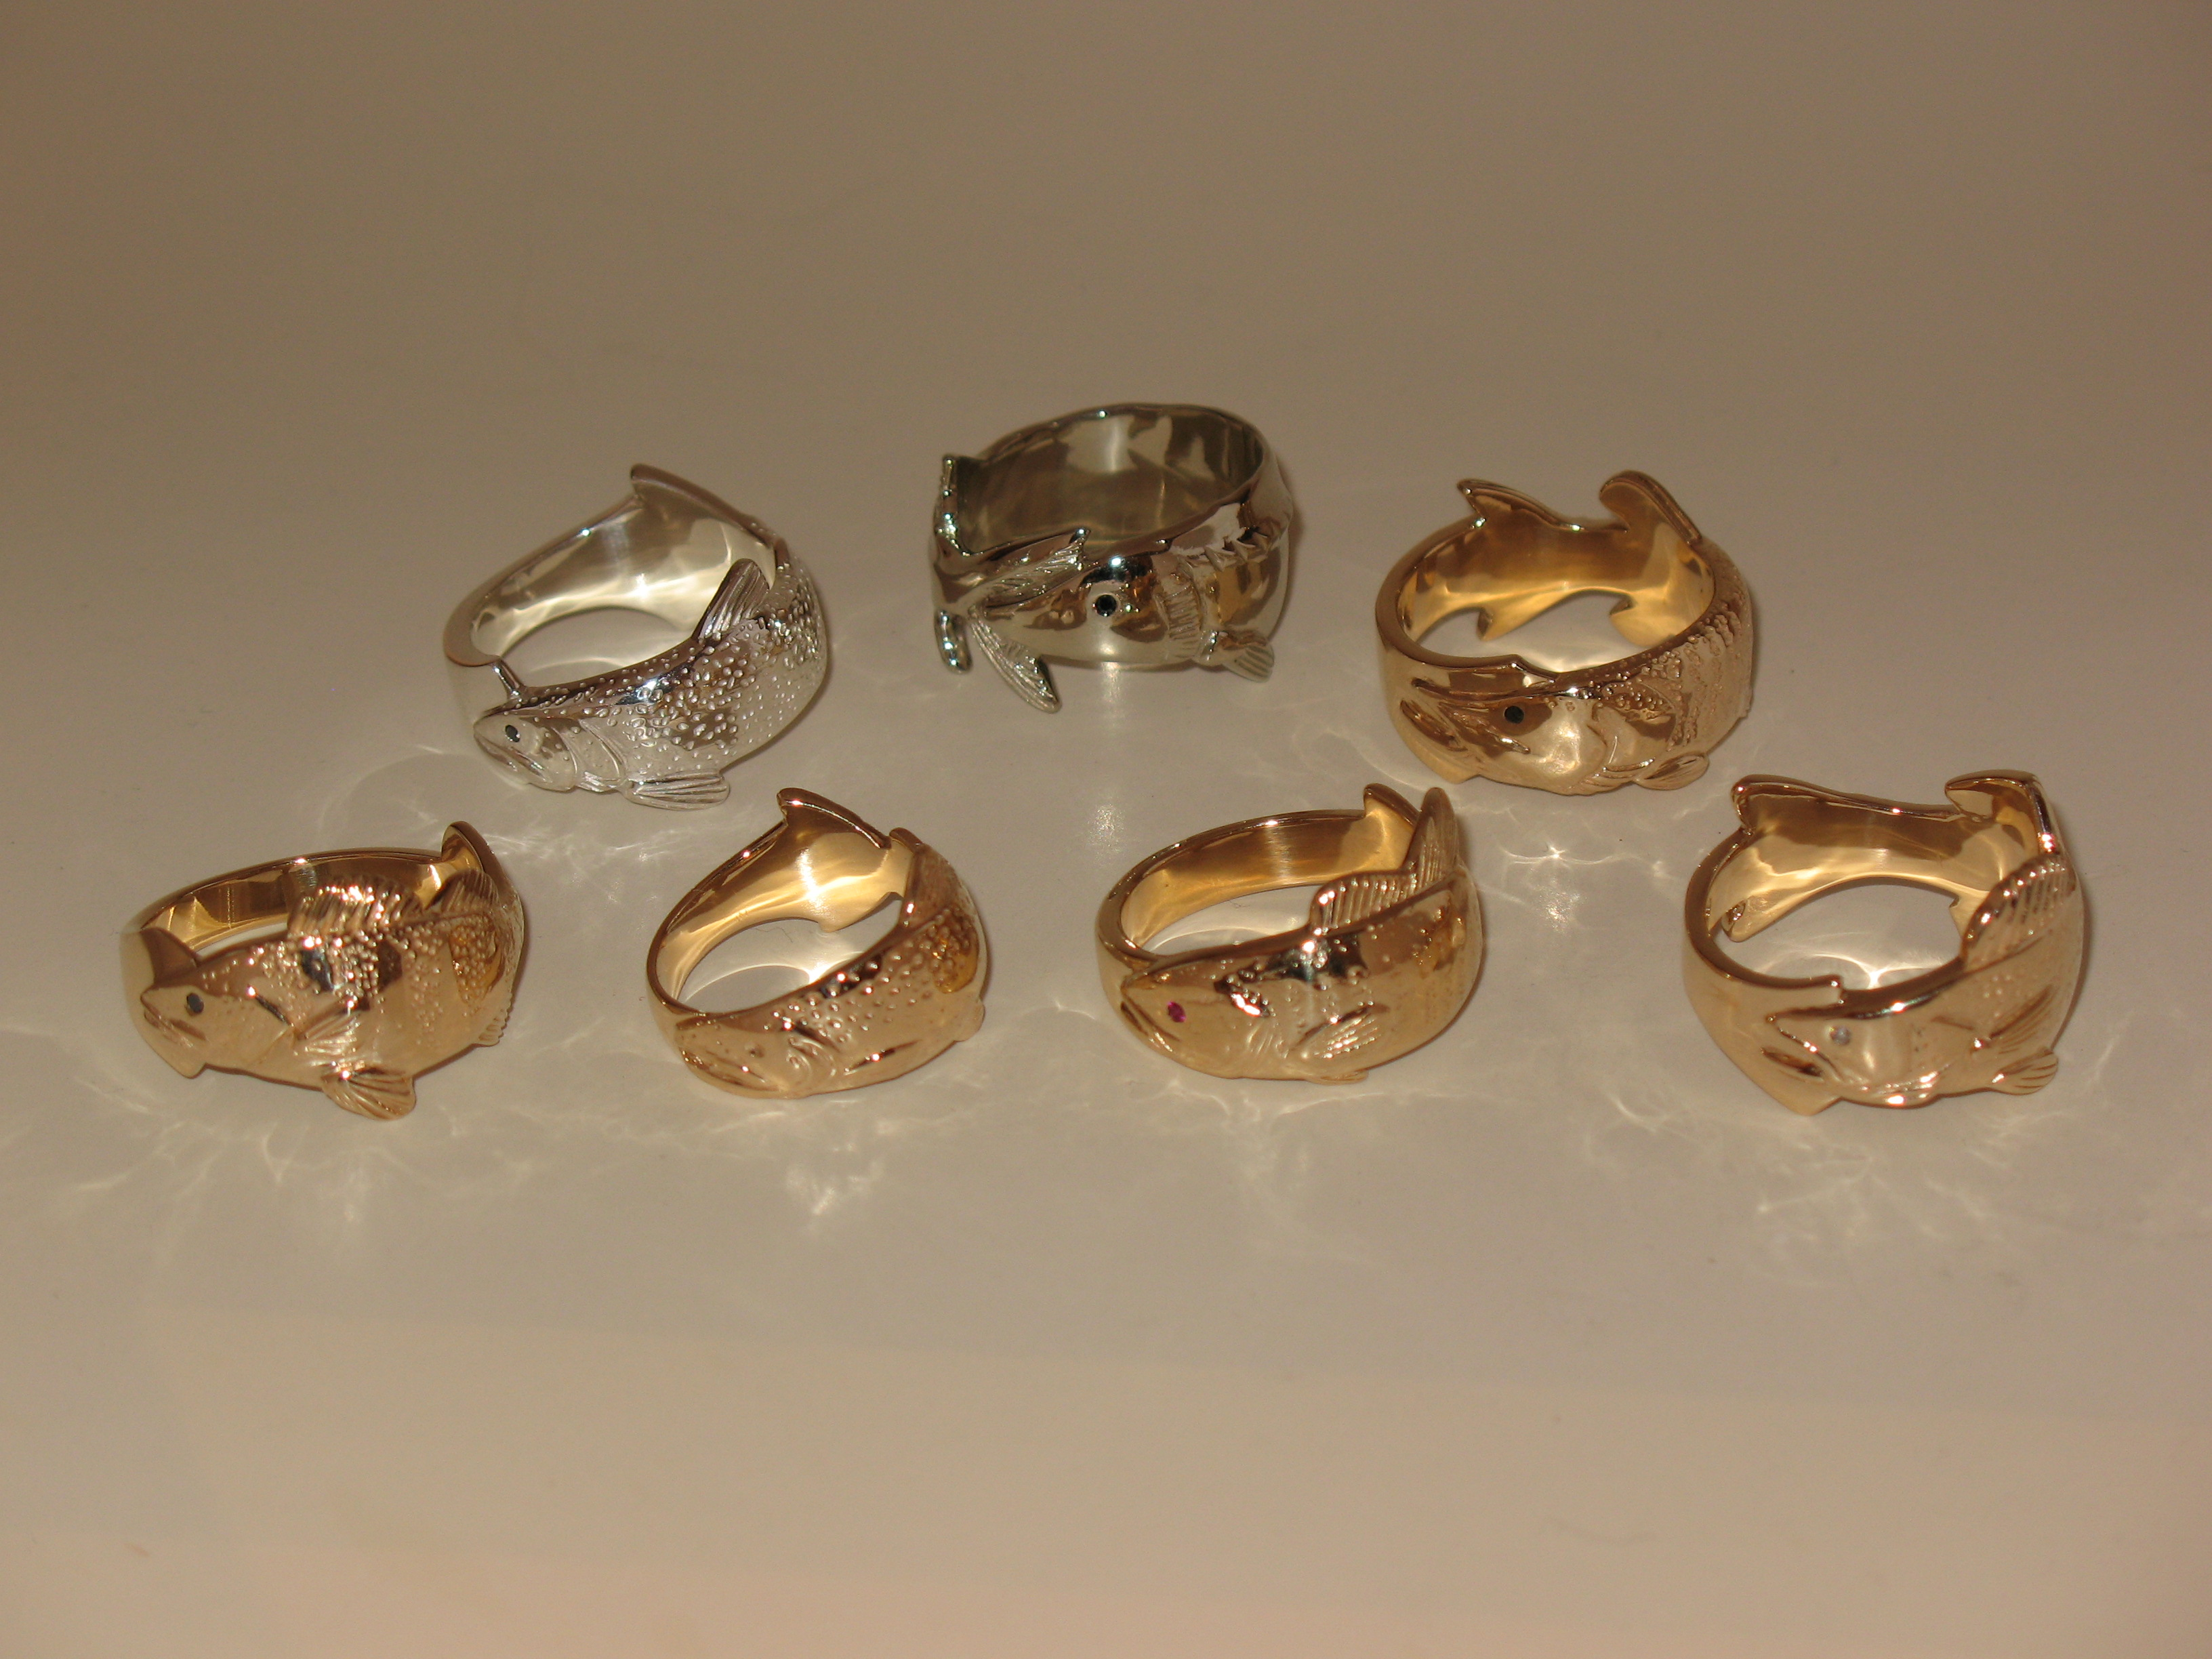 Group Photo of all Trophy Fish Rings